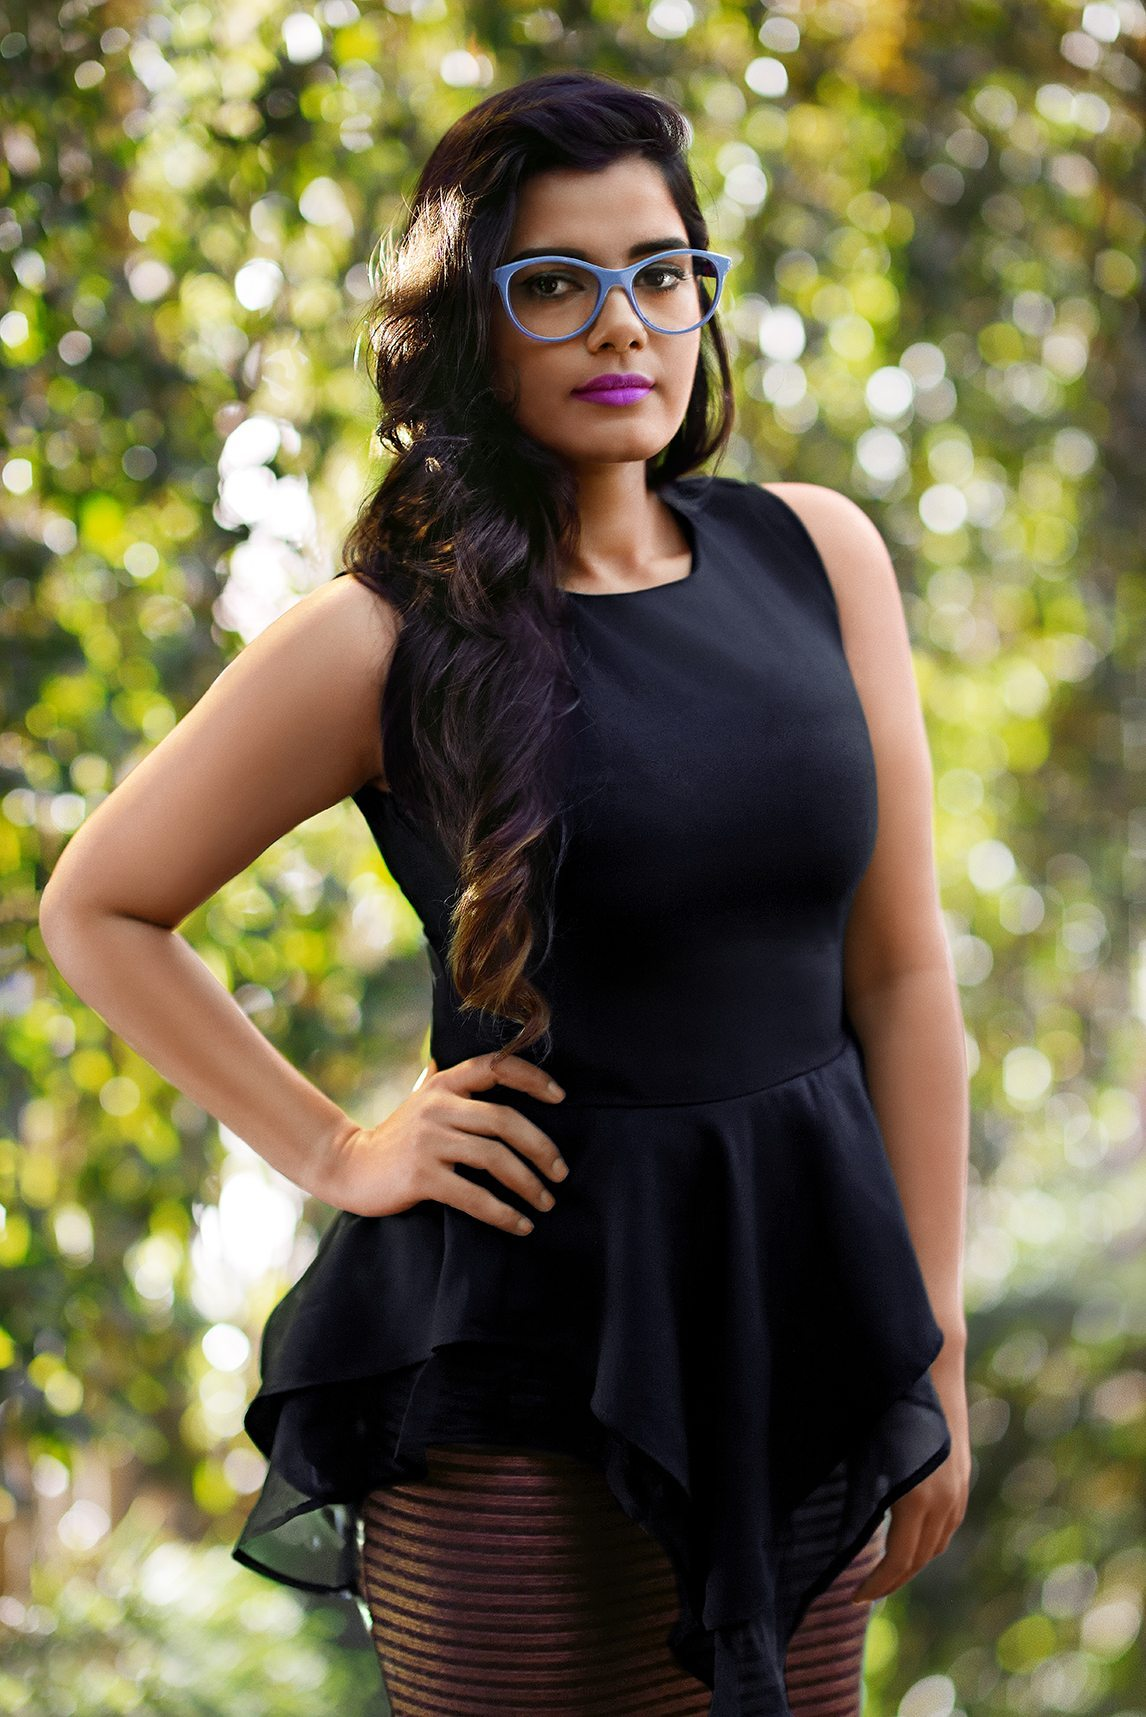 #InVogueEyeWear Behind The Scenes Photography for Luxottica India, Naina.co, Luxury Photographer, Lifestyle Photographer, Experience Collector, Naina Redhu, On Assignment, Professional Photographer, Blogger, Atul Kasbekar